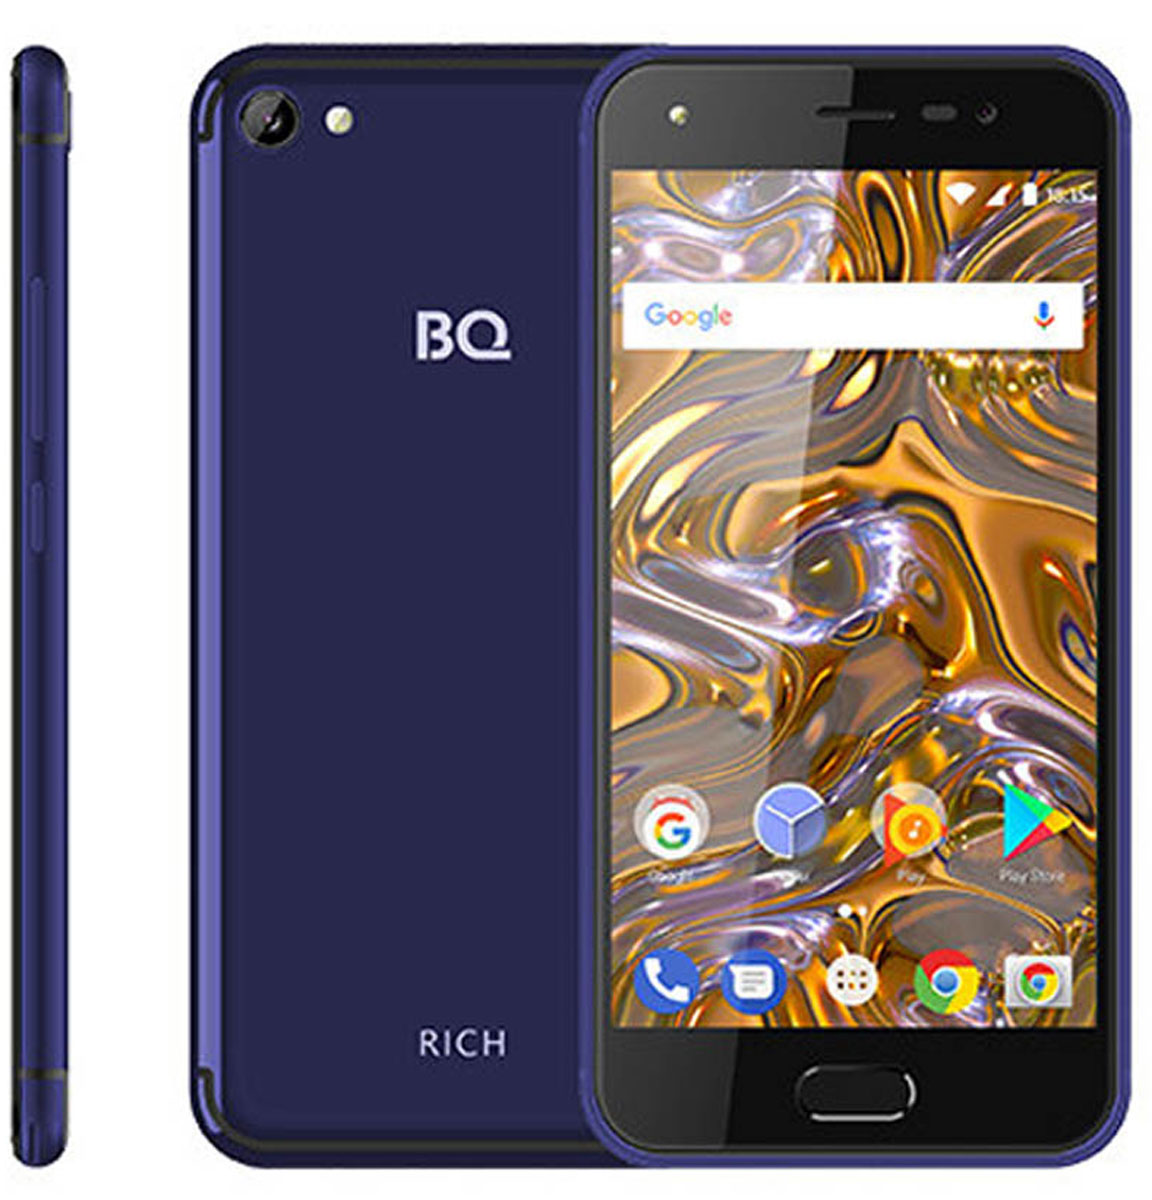 Смартфон BQ Mobile 5012L Rich 1/8GB, темно-синий смартфон bq bq 5012l rich lte black